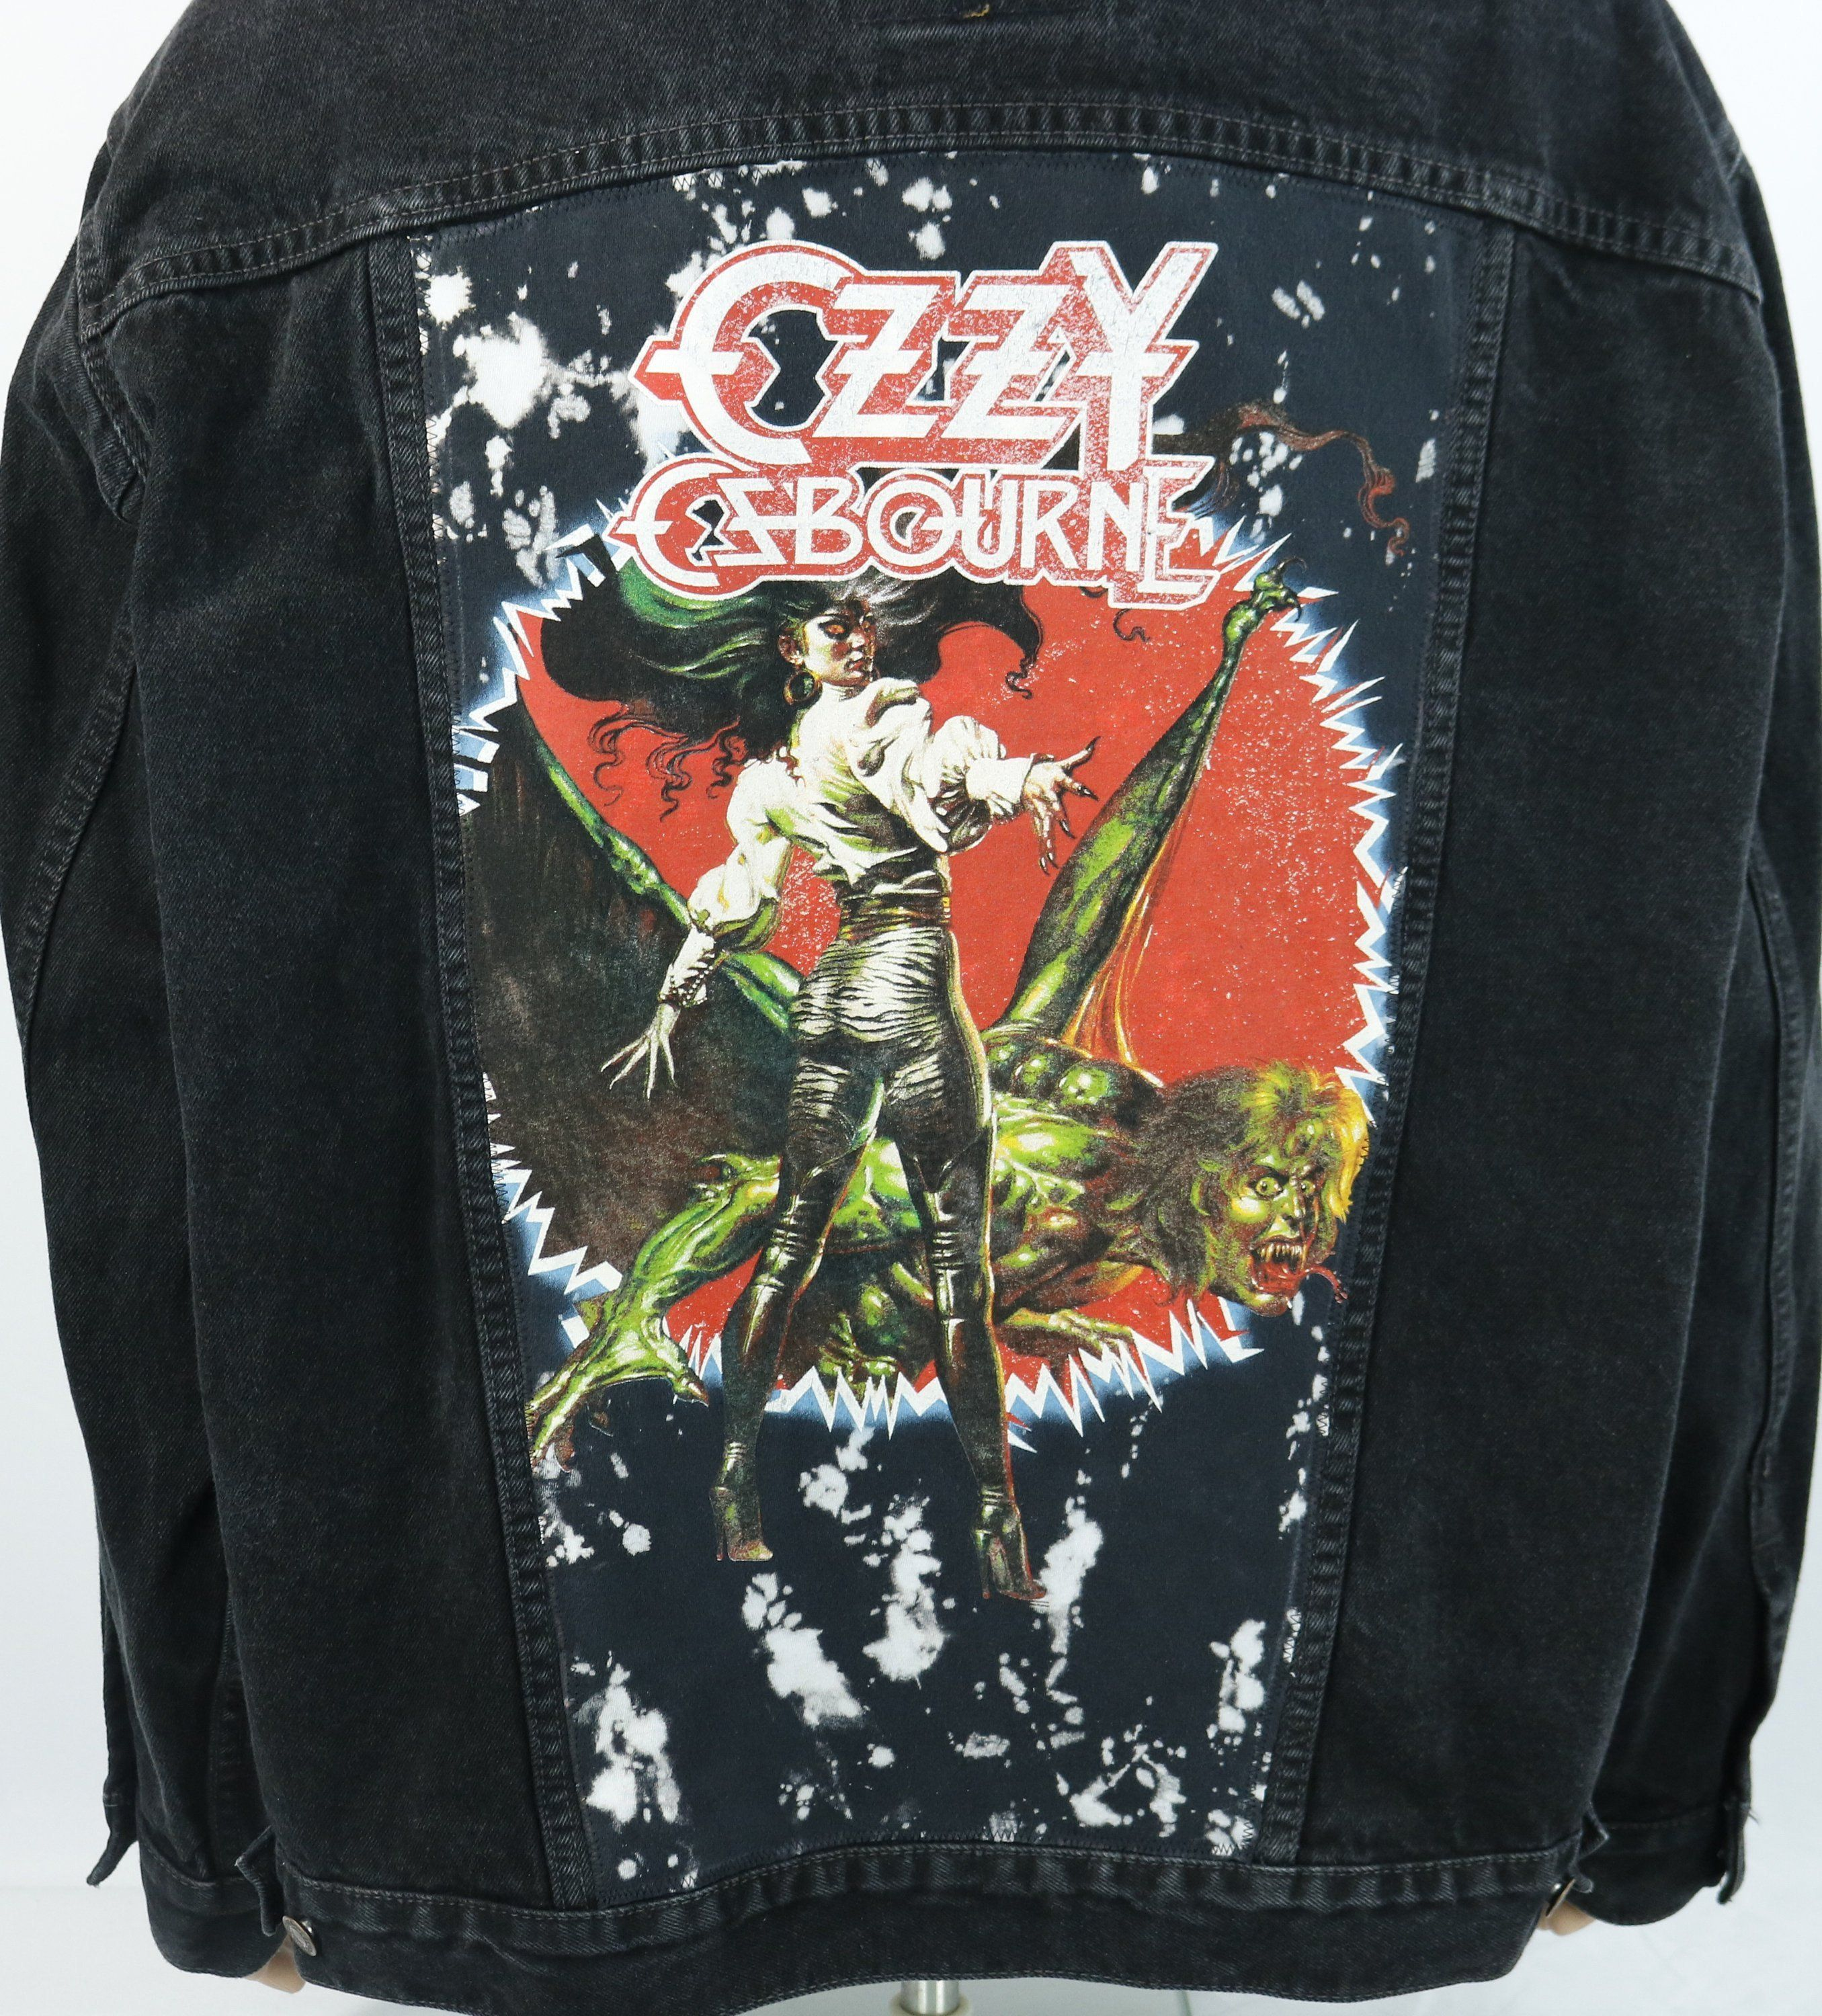 610e5e19cc4 Ozzy Osbourne Levi s Black Denim Jacket VTG Made in USA Jean Sabbath Mens  2XL